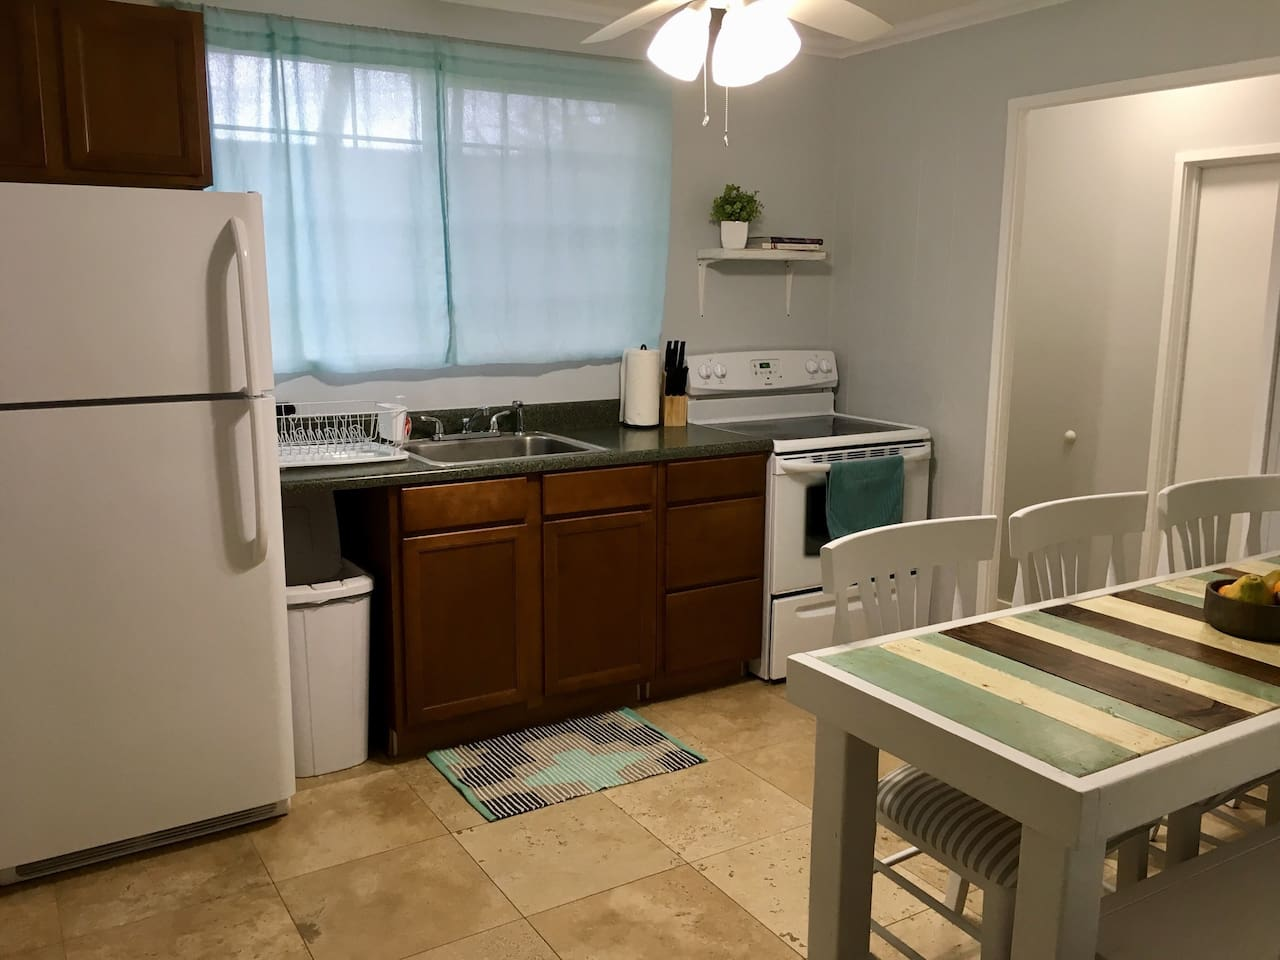 Kitchen with large fridge, oven with ceramic stovetop, knife set, kitchen table that seats 6